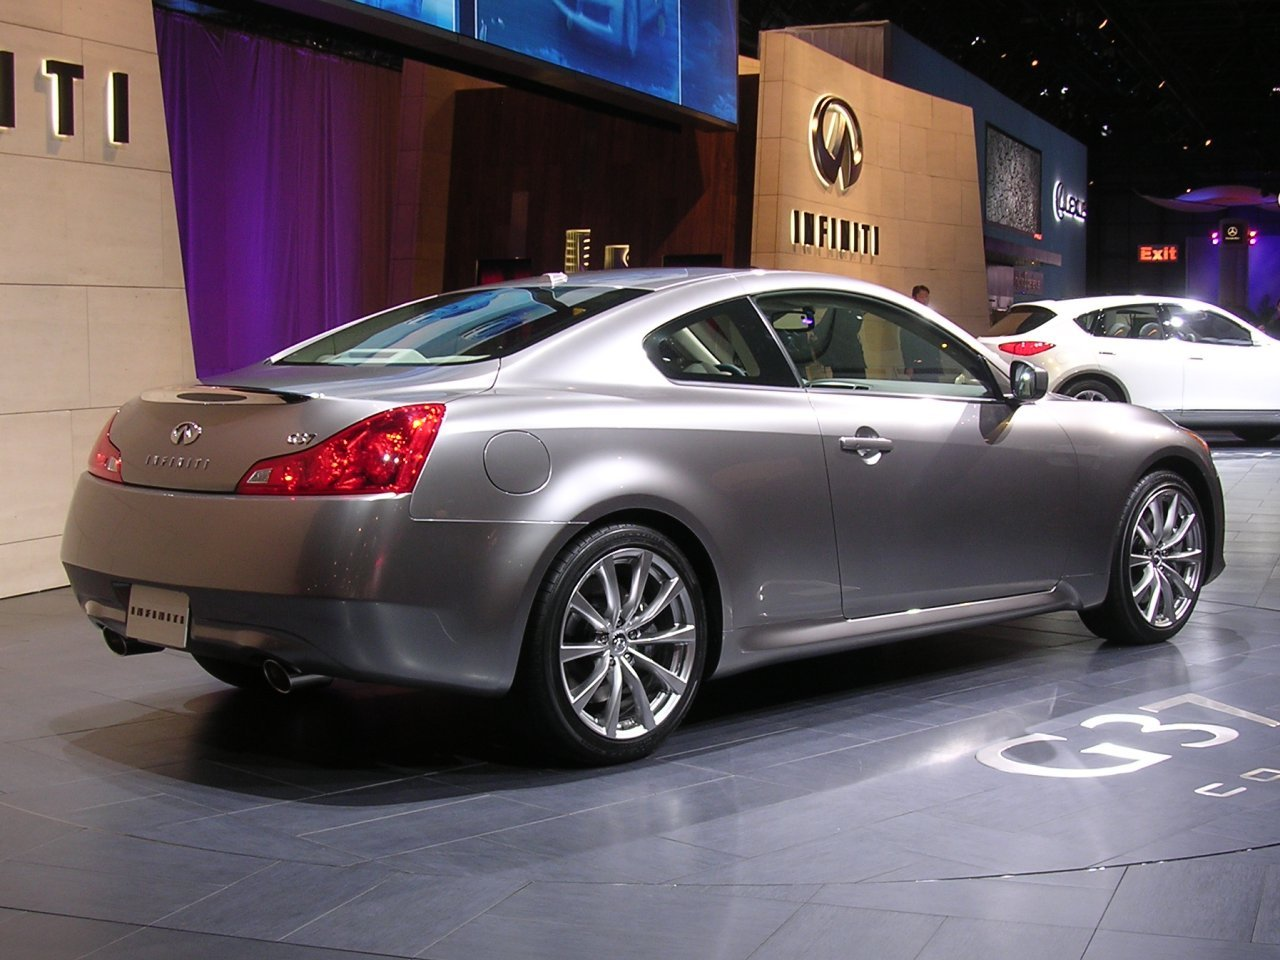 lary crews infiniti g37 coupe 2007 images. Black Bedroom Furniture Sets. Home Design Ideas